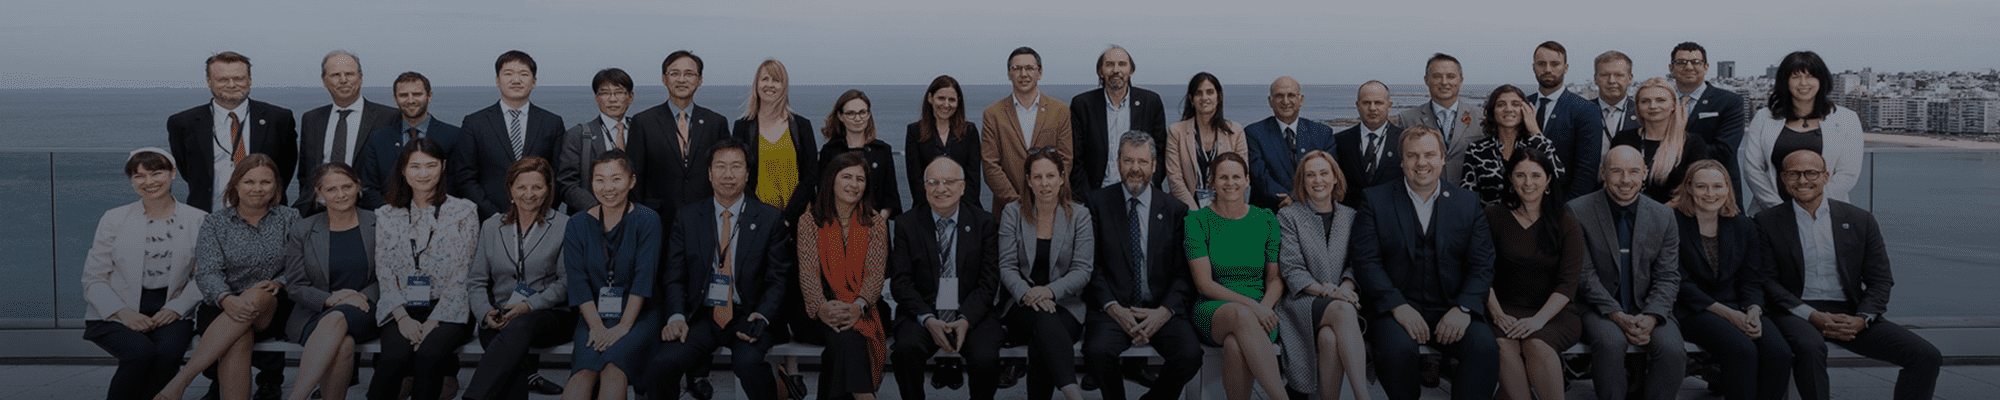 Members of the Digital Nations assembled in Montreal for FWD50 2019 return in 2020 for the Digital Nations Summit